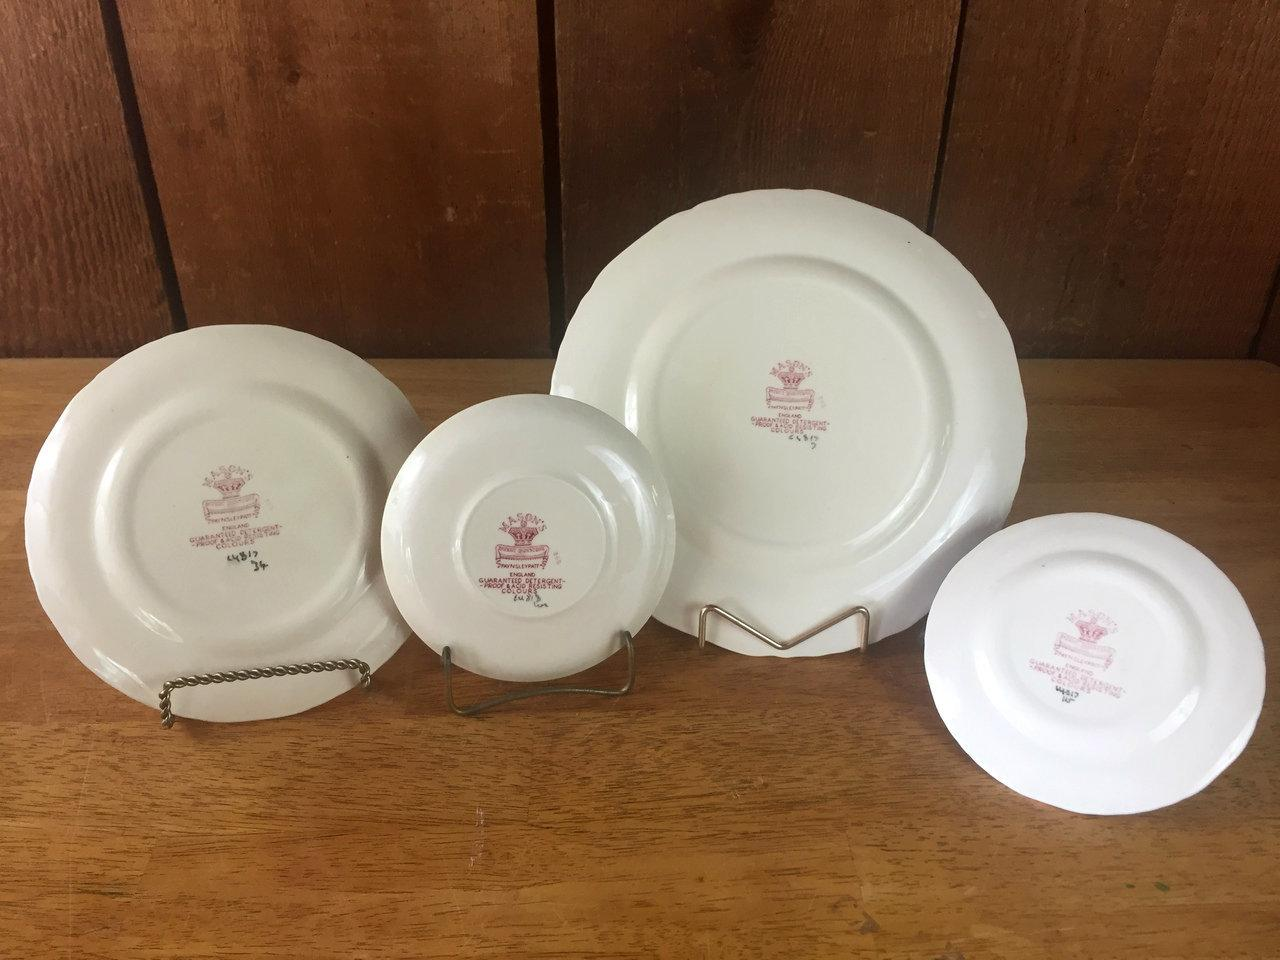 1940s Masonu0027s Ironstone Paynsley Pattern Dinnerware- 51 Pieces - Image 4 of 11  sc 1 st  Chairish & 1940s Masonu0027s Ironstone Paynsley Pattern Dinnerware- 51 Pieces ...